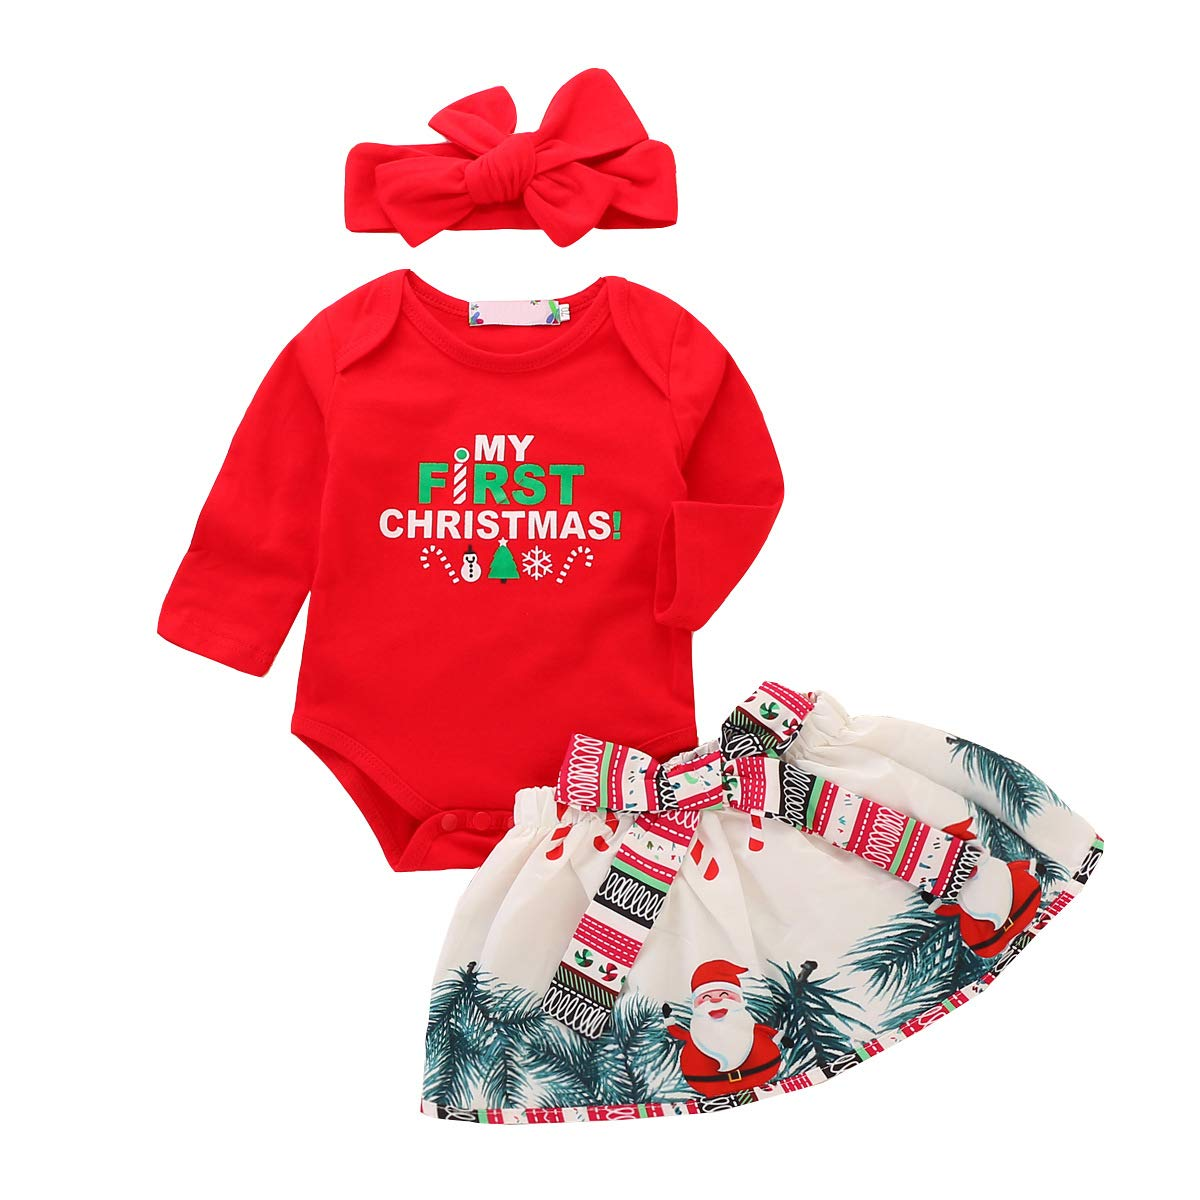 My First Christmas Holiday Newborn Baby Girl Outfit Clothes Gift 3PCS Set